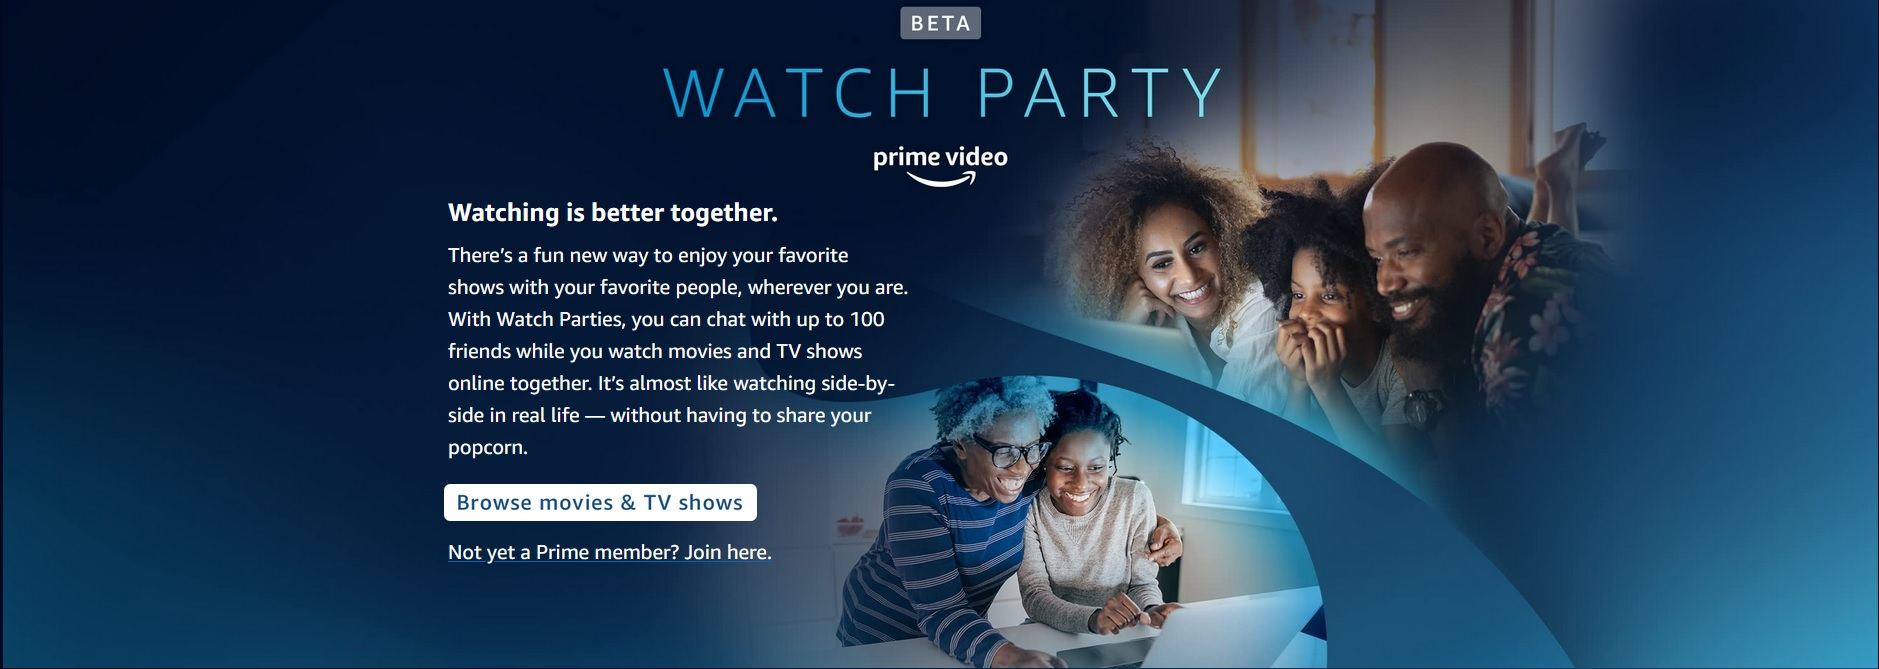 How to use Watch Party with Amazon Prime Video to stream videos together online